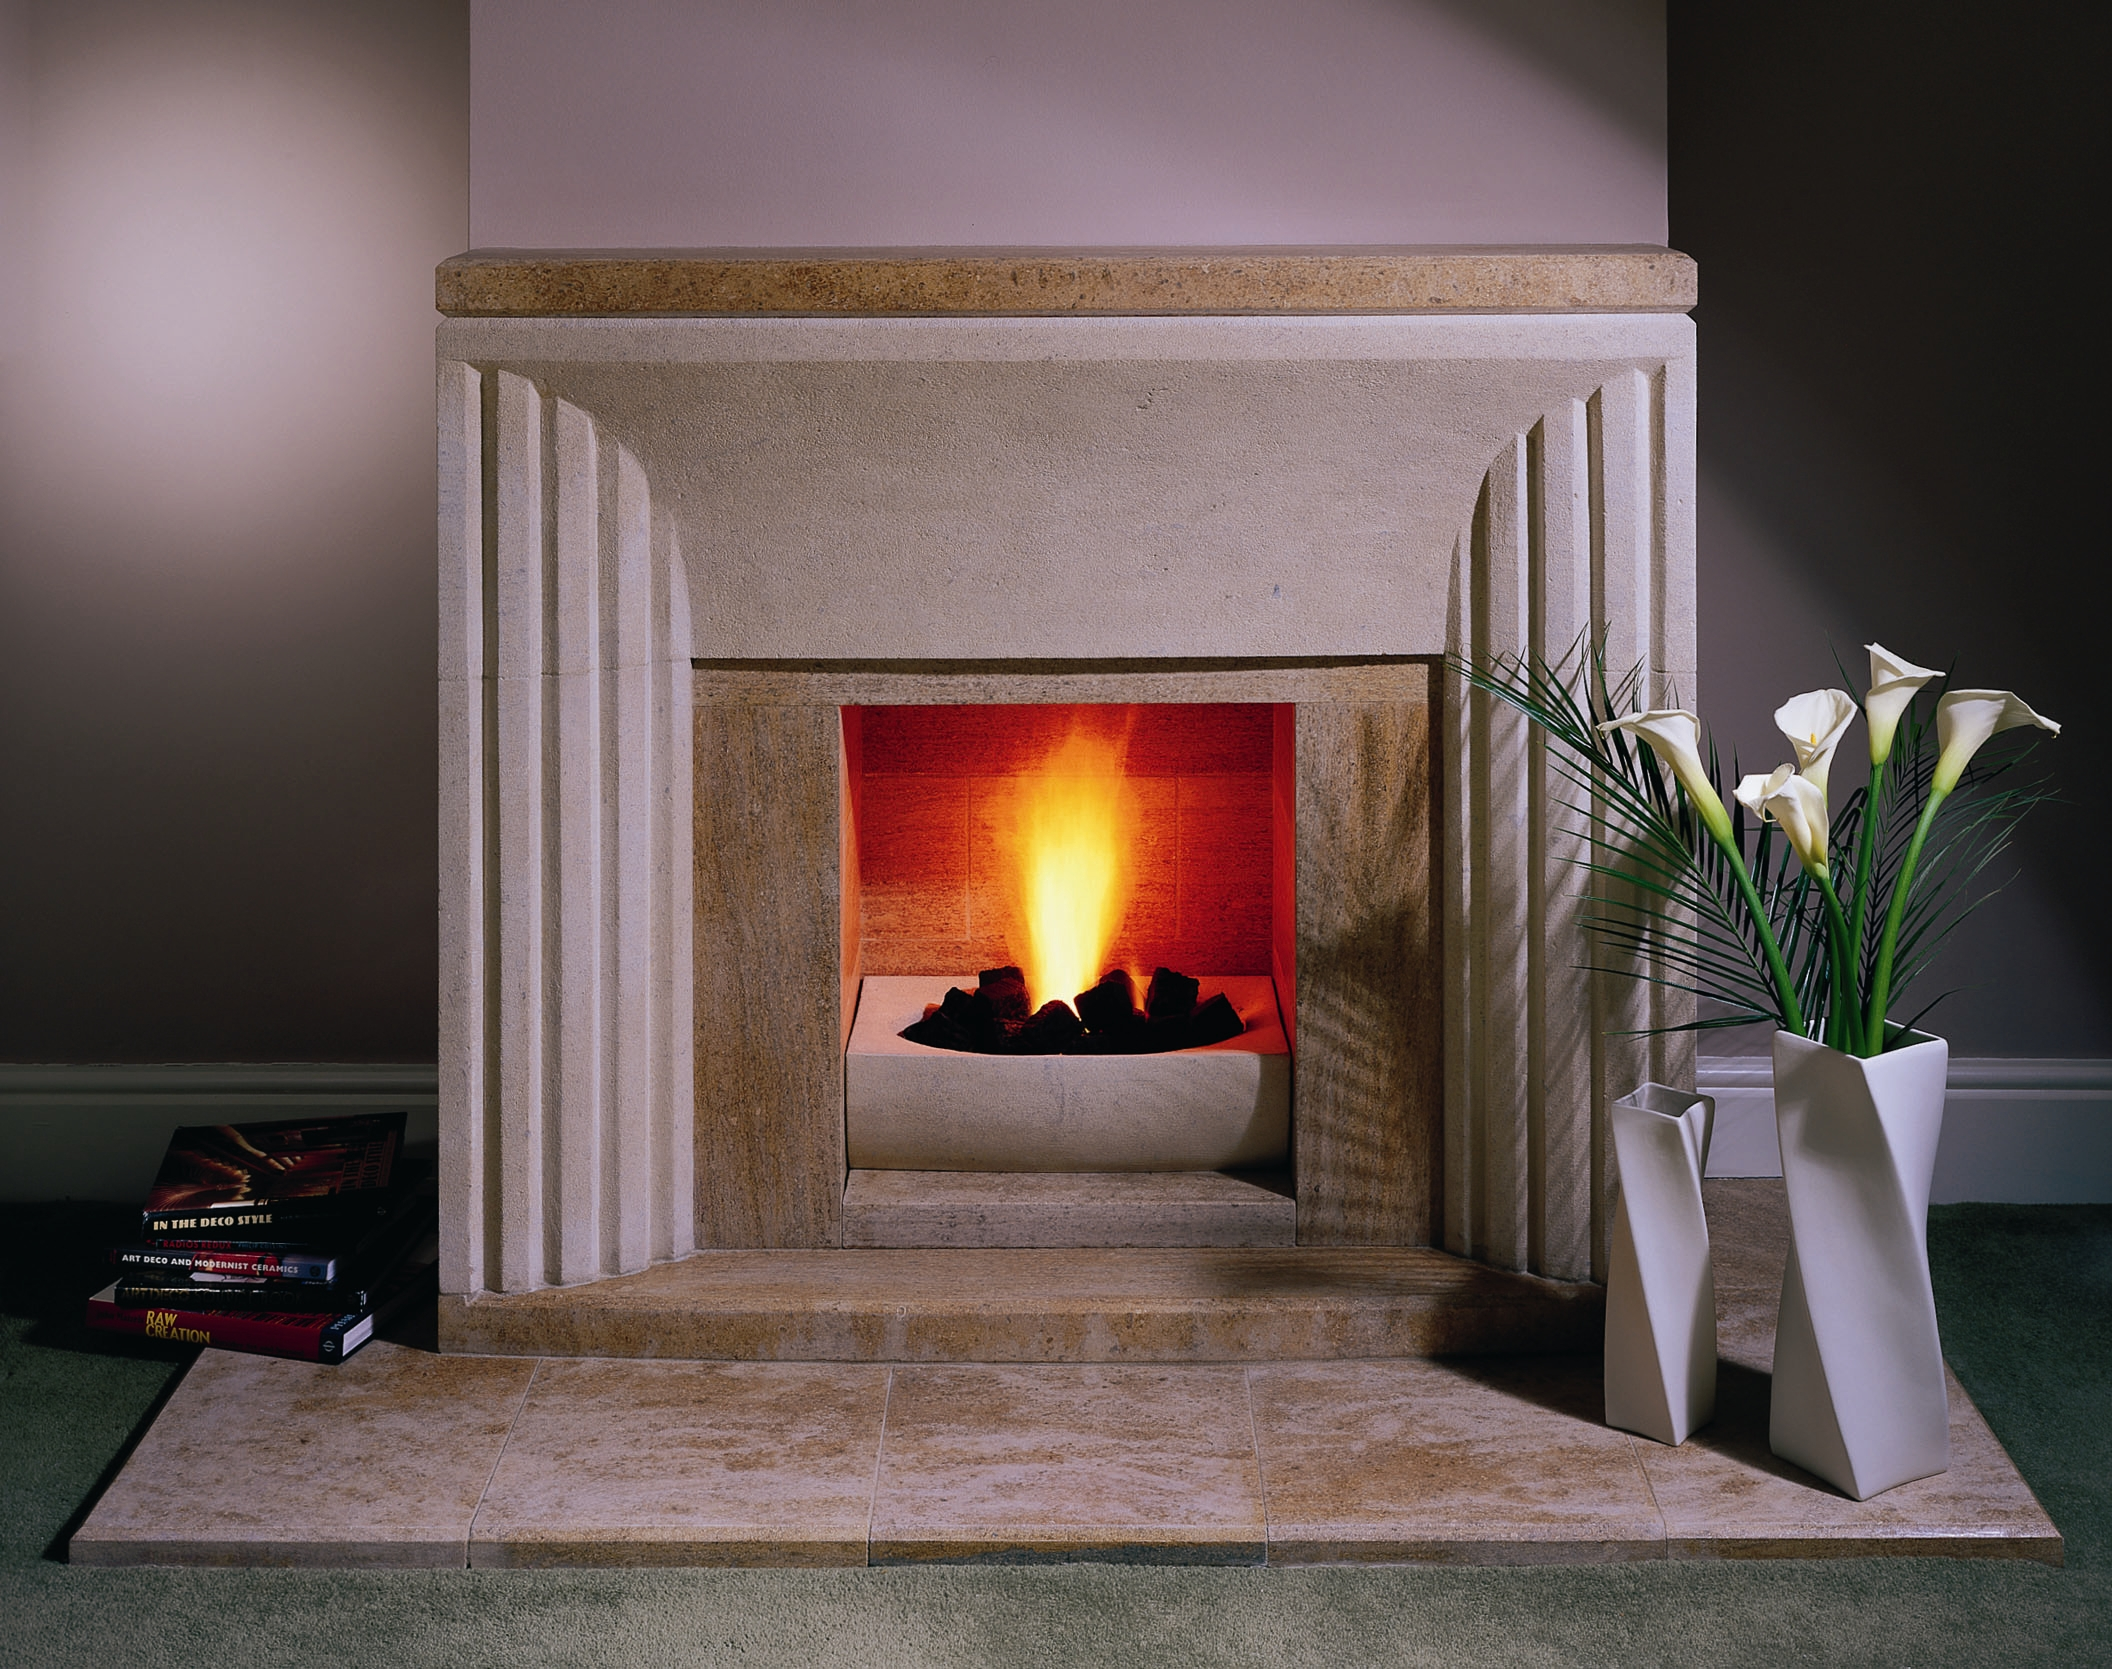 22. Contrasting Bathstone and Ancaster Weatherbed stone surround – Ian's own fireplace